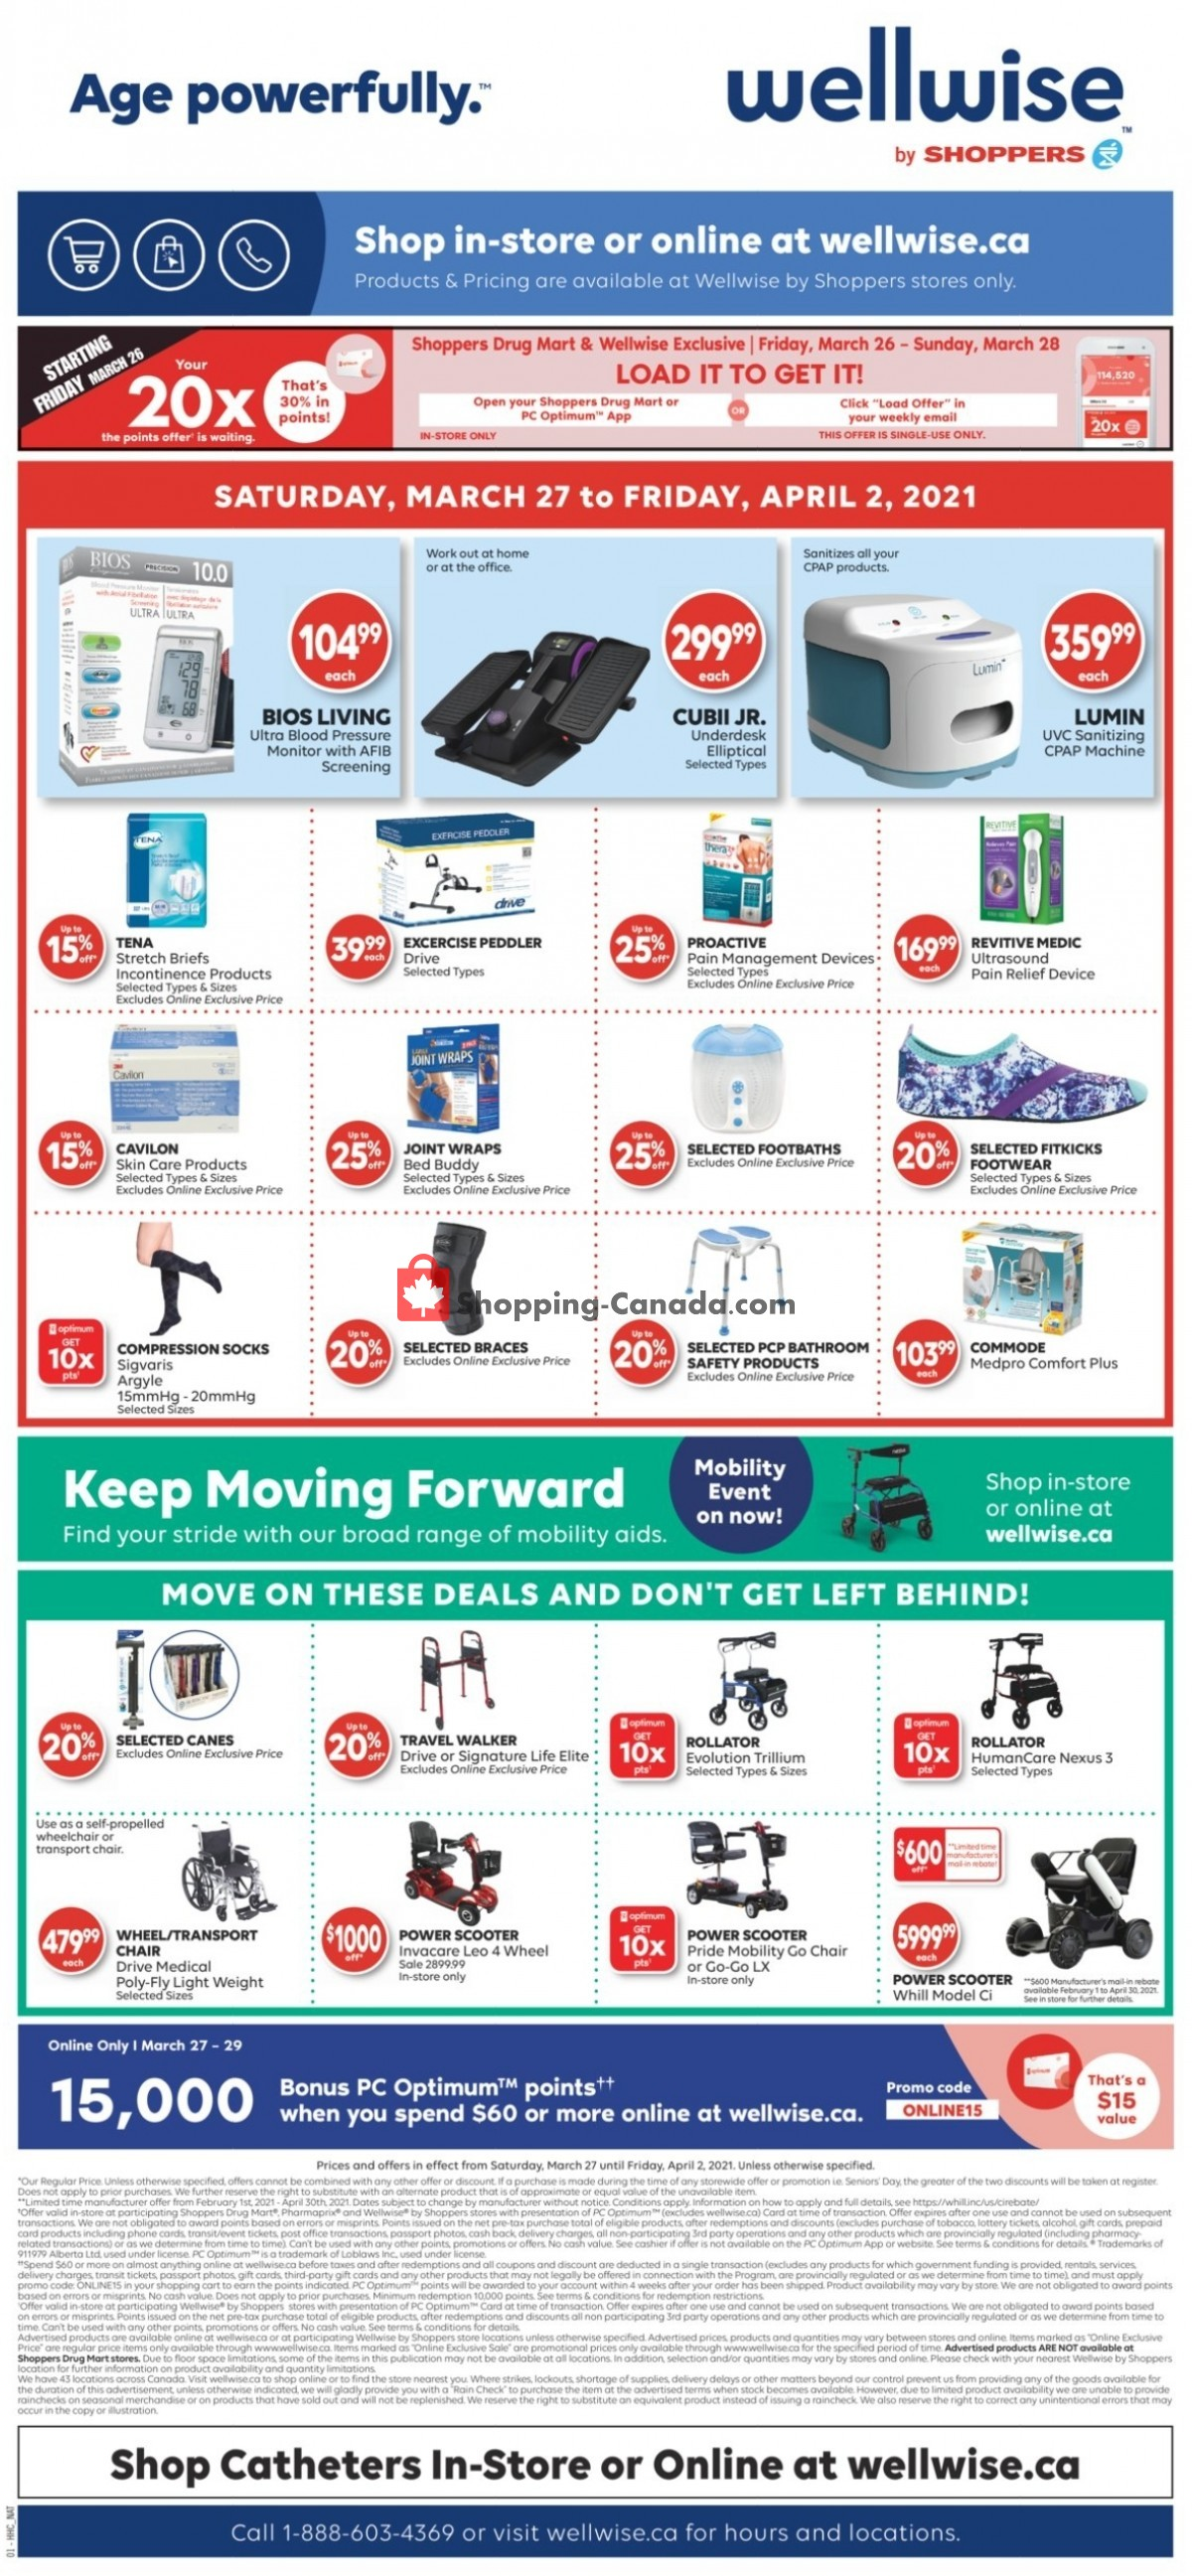 Flyer WellWise by Shoppers Drug Mart Canada - from Saturday March 27, 2021 to Friday April 2, 2021